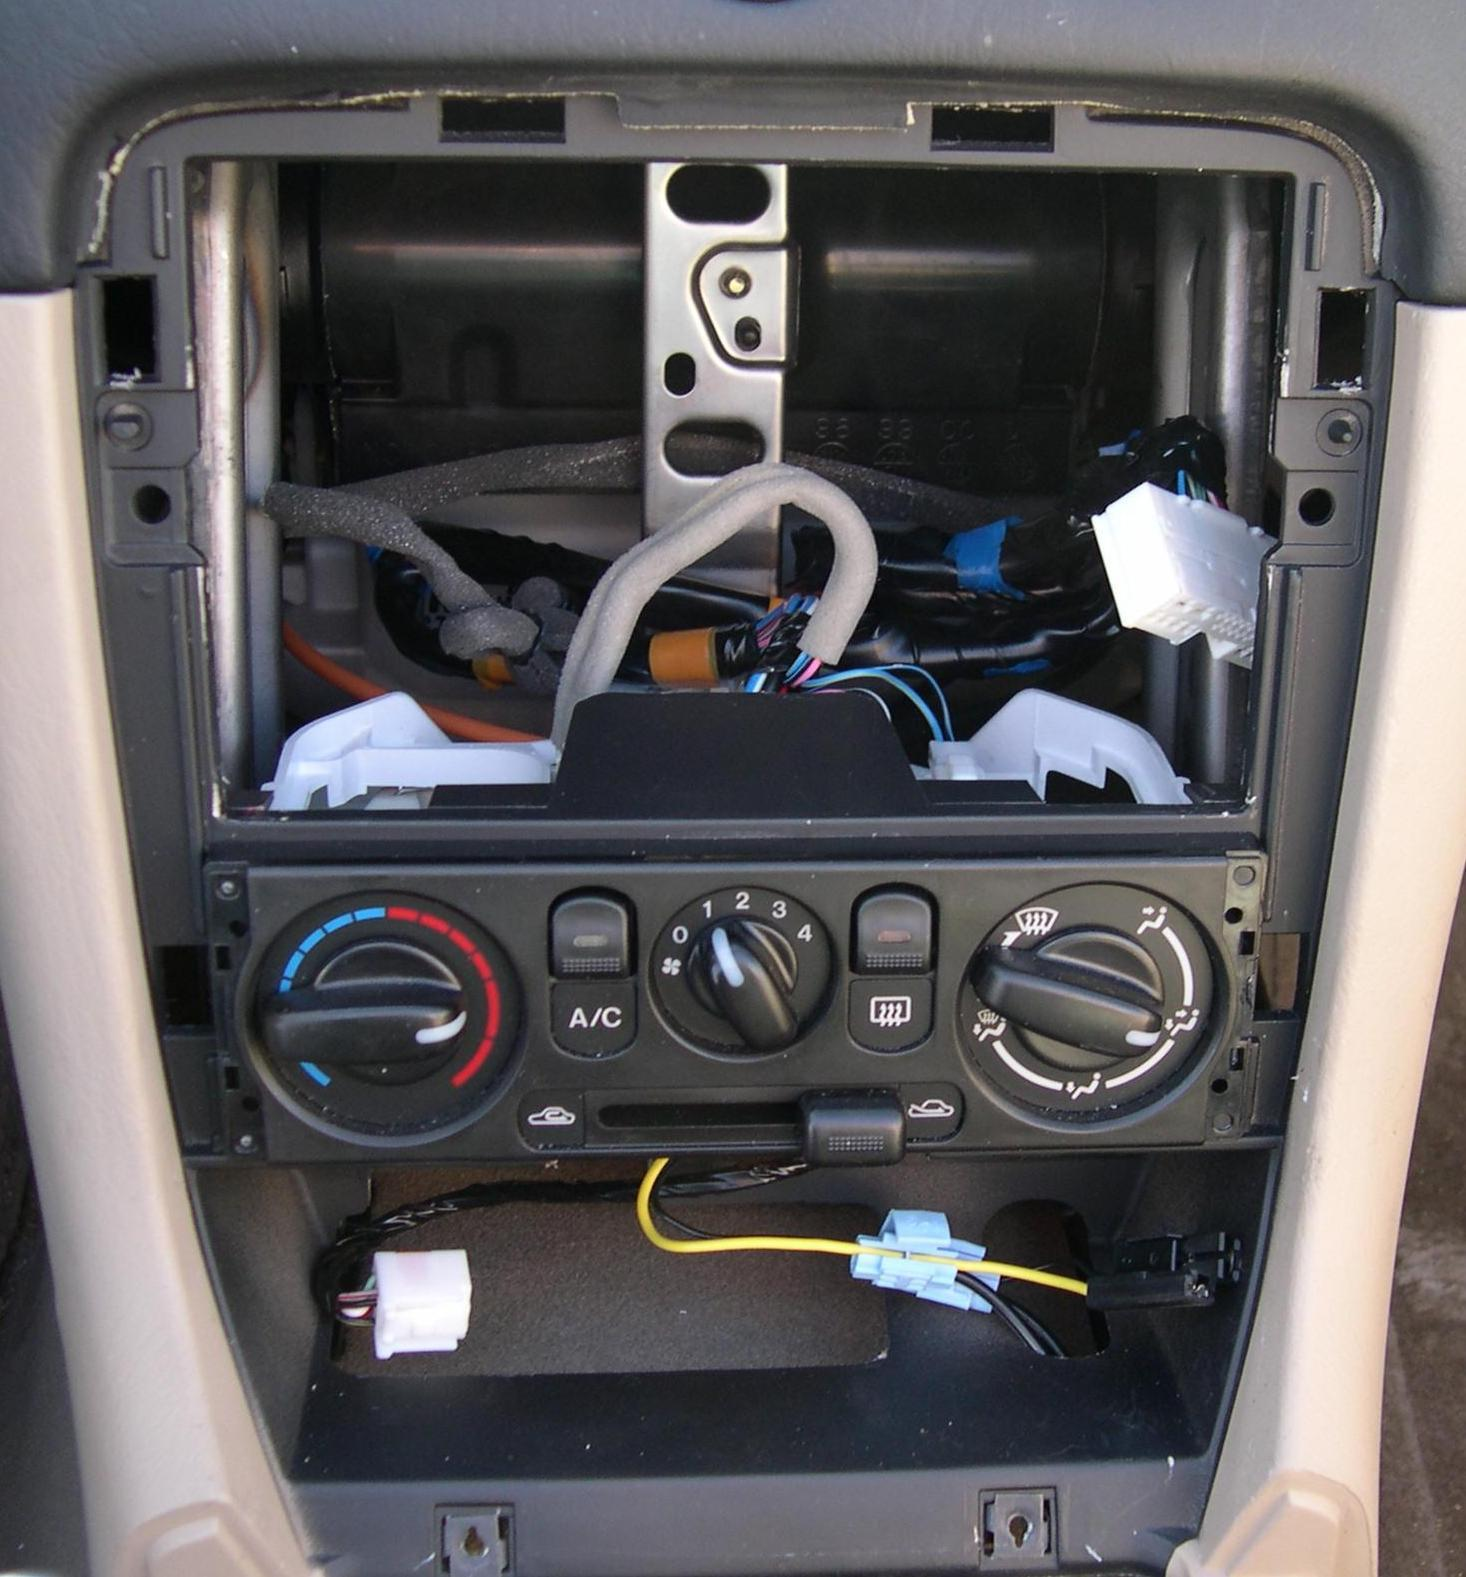 2001 Radio Out the mazda nb oem audio system faq Pioneer Radio Wiring Diagram at panicattacktreatment.co